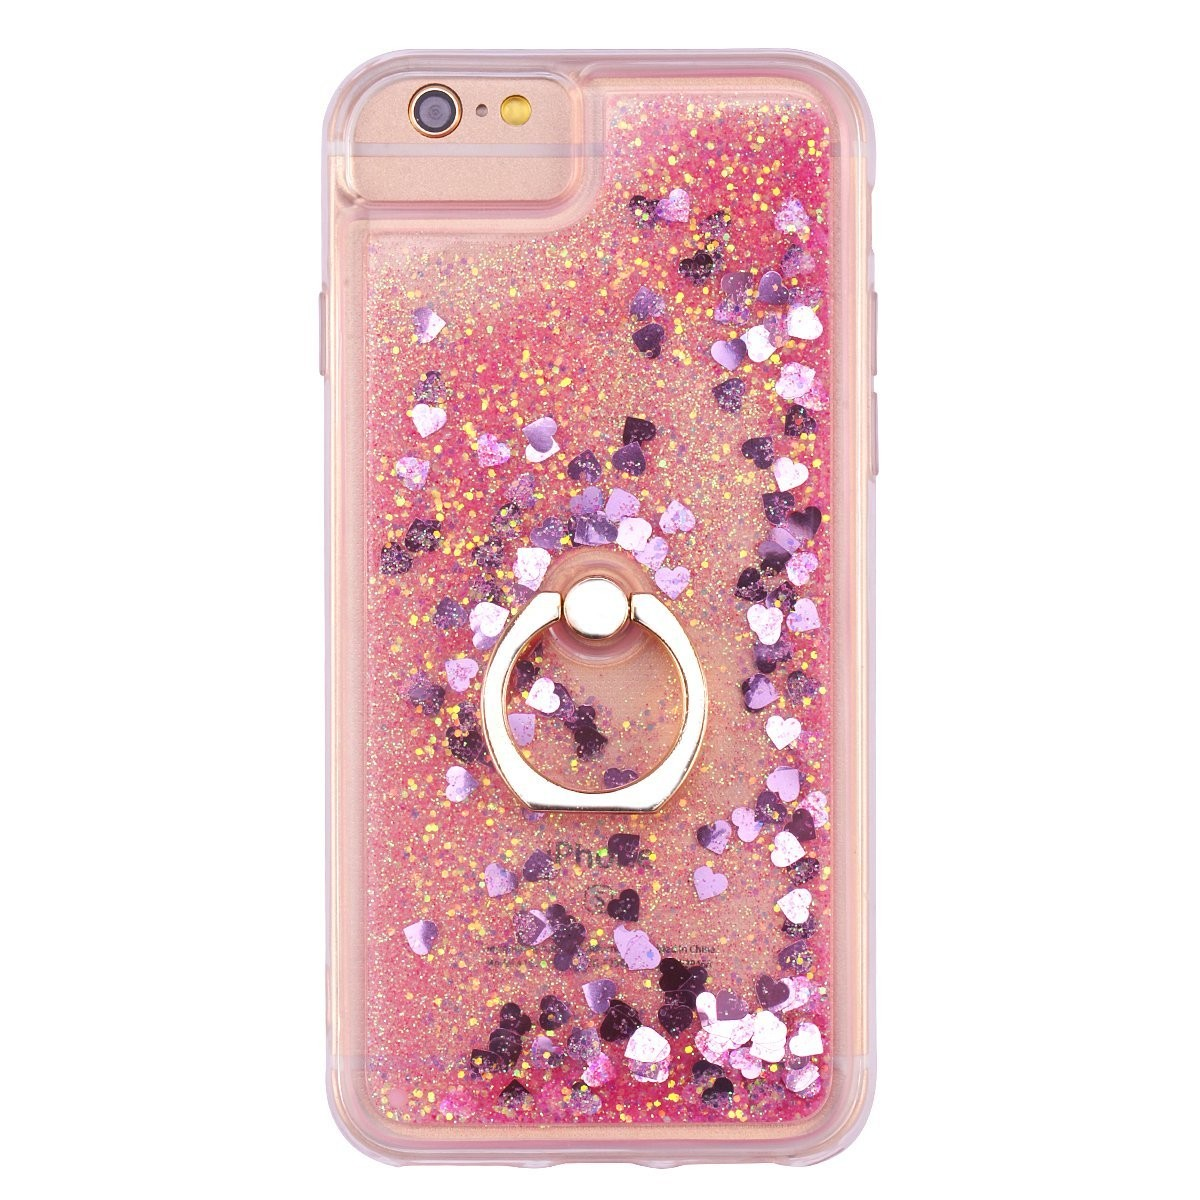 iphone 6 case cute